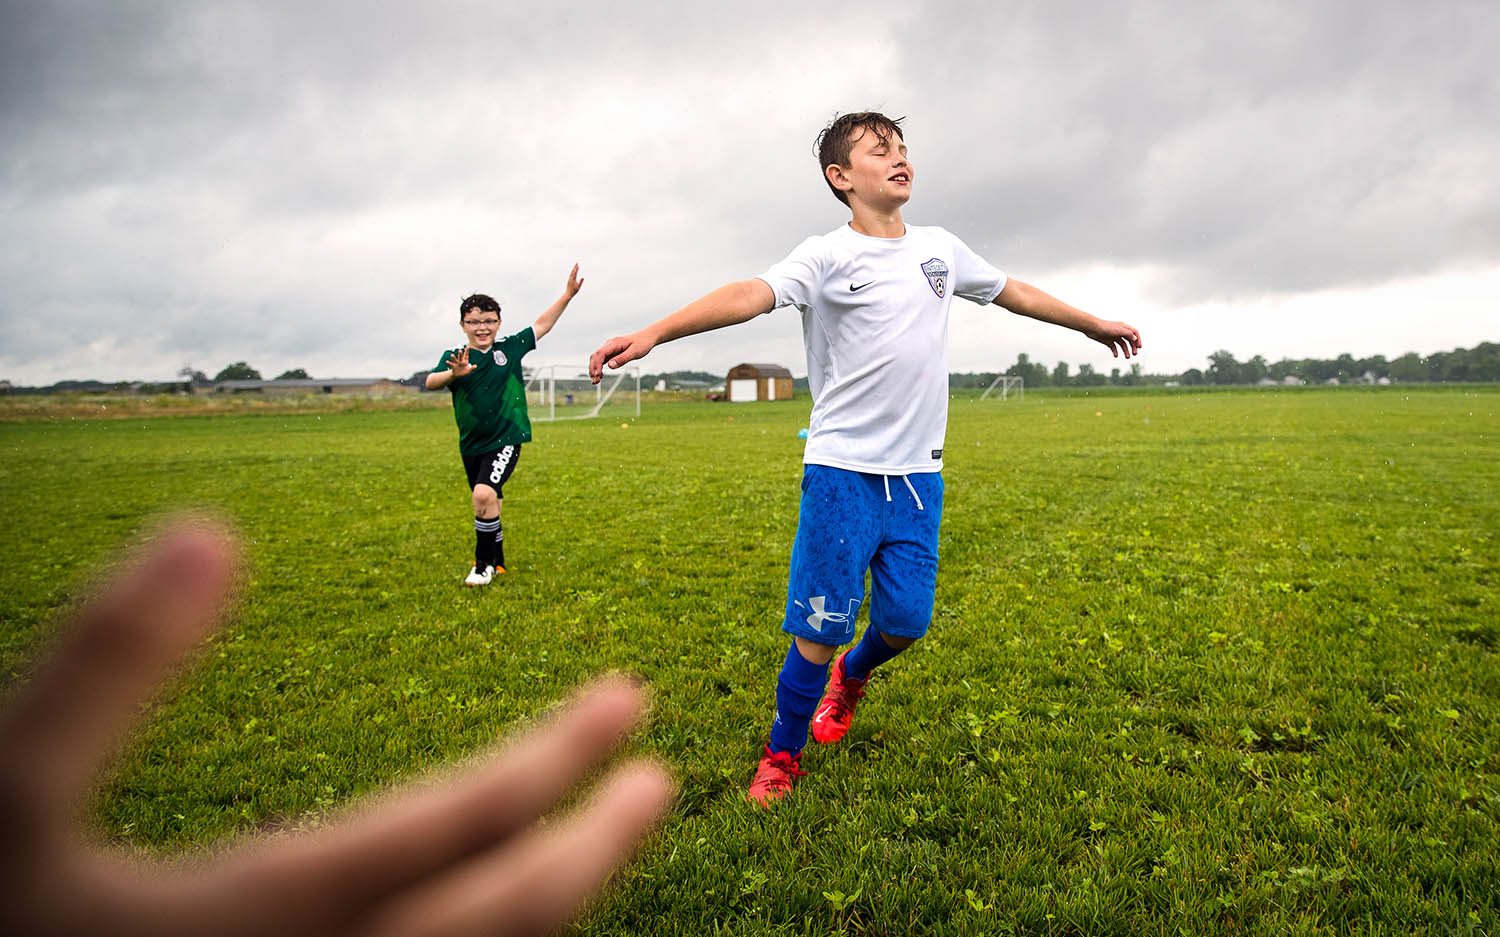 Oliver Buss, left, and Andrew Drennan dance around in the rain during a water break at the TetraBrazil Camp at Integrity Soccer Fields at Calvary Church in Springfield, Monday, June 24, 2019. Camp organizers said the training, which continues through Friday, includes warming up to samba music and learning some Portuguese phrases, emphasizes traditional Brazilian technical practices with the flair, passion, and creativity of South American soccer. [Ted Schurter/The State Journal-Register]